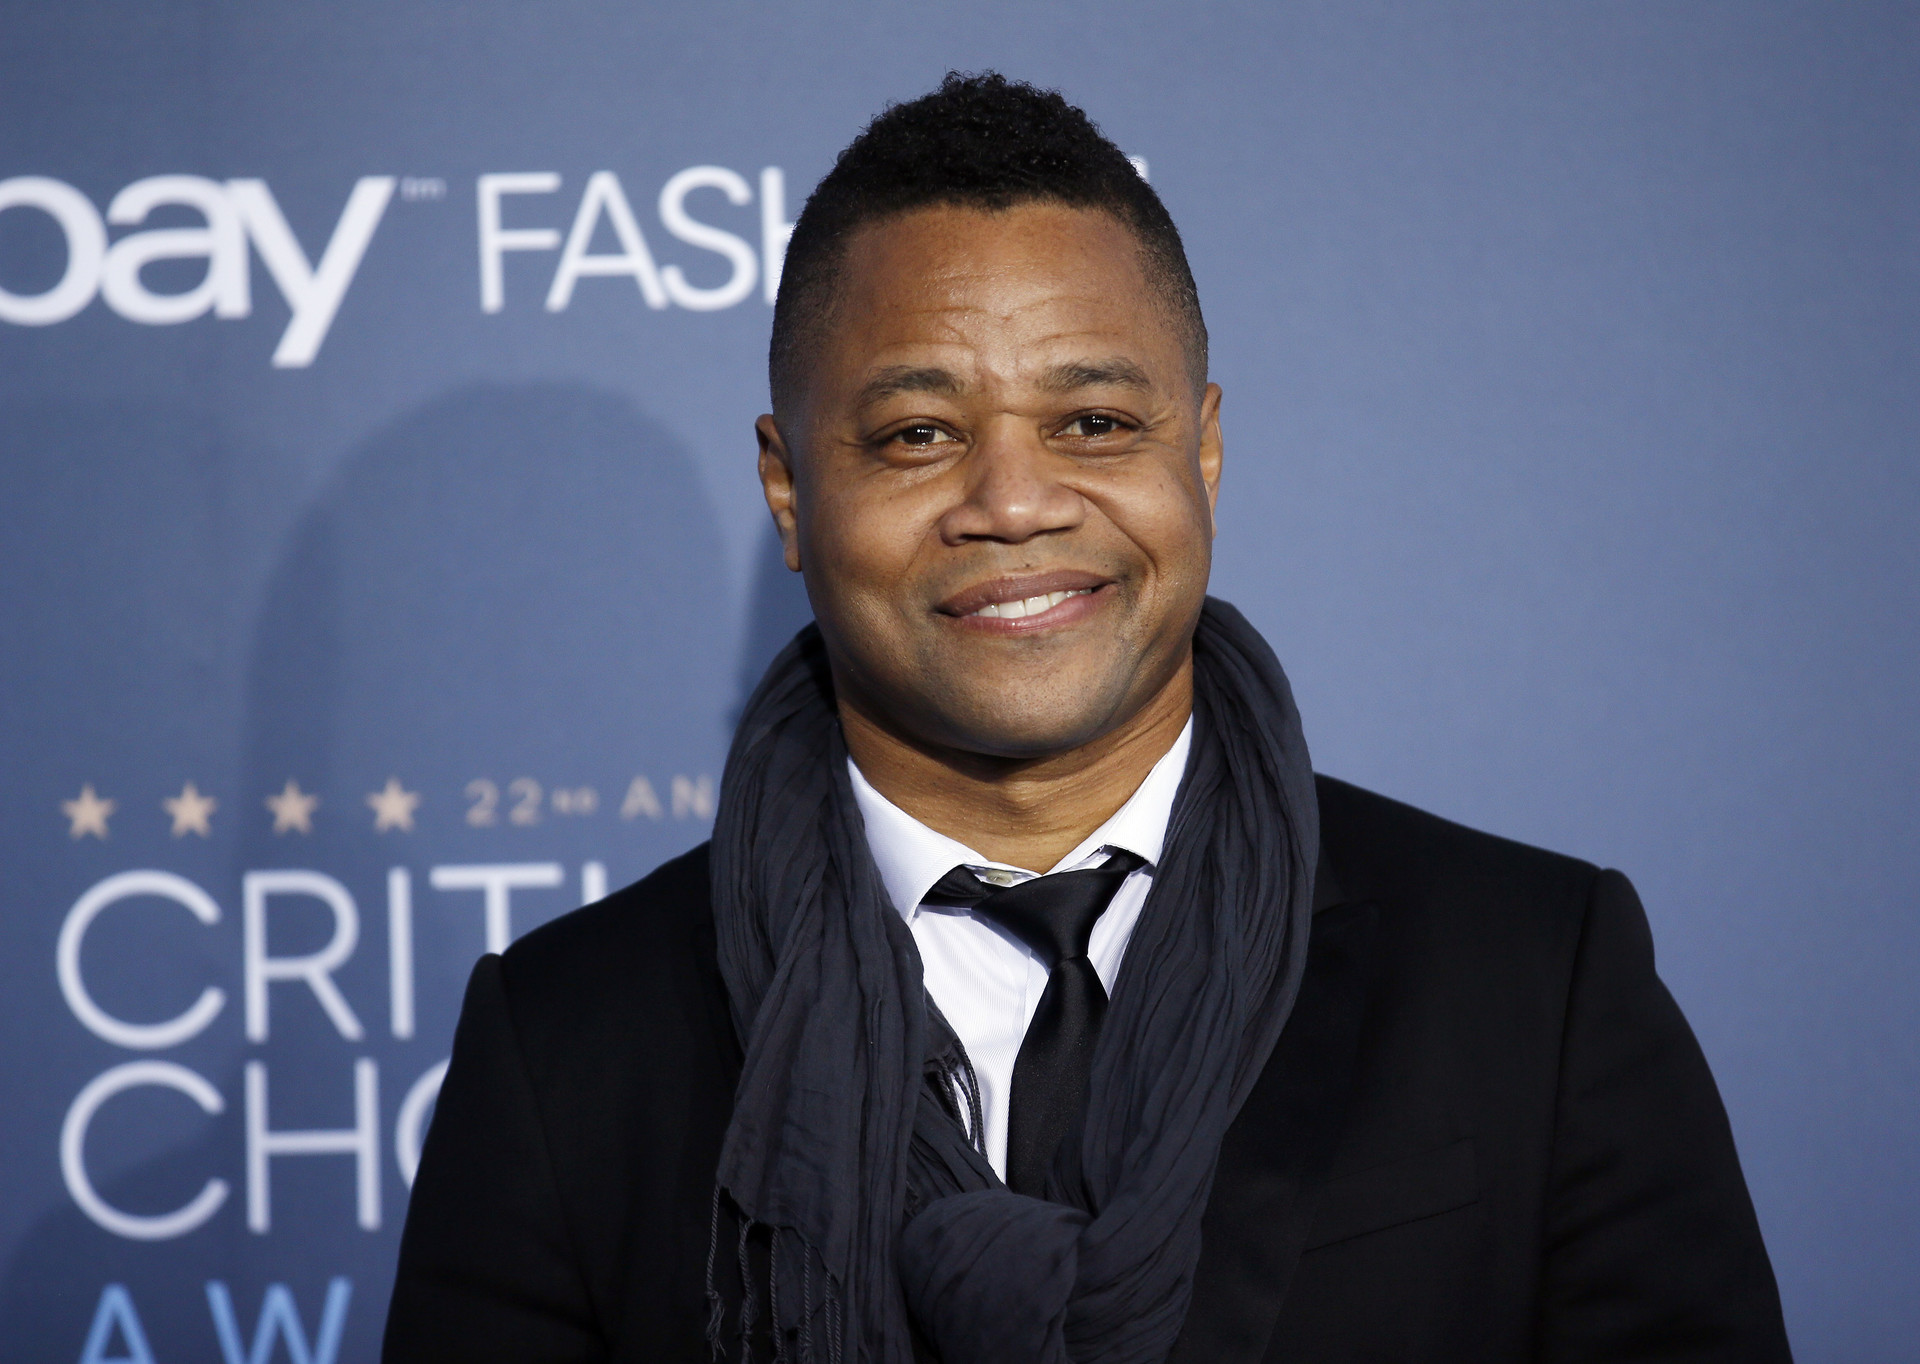 Cuba Gooding Jr., acusado de acoso sexual